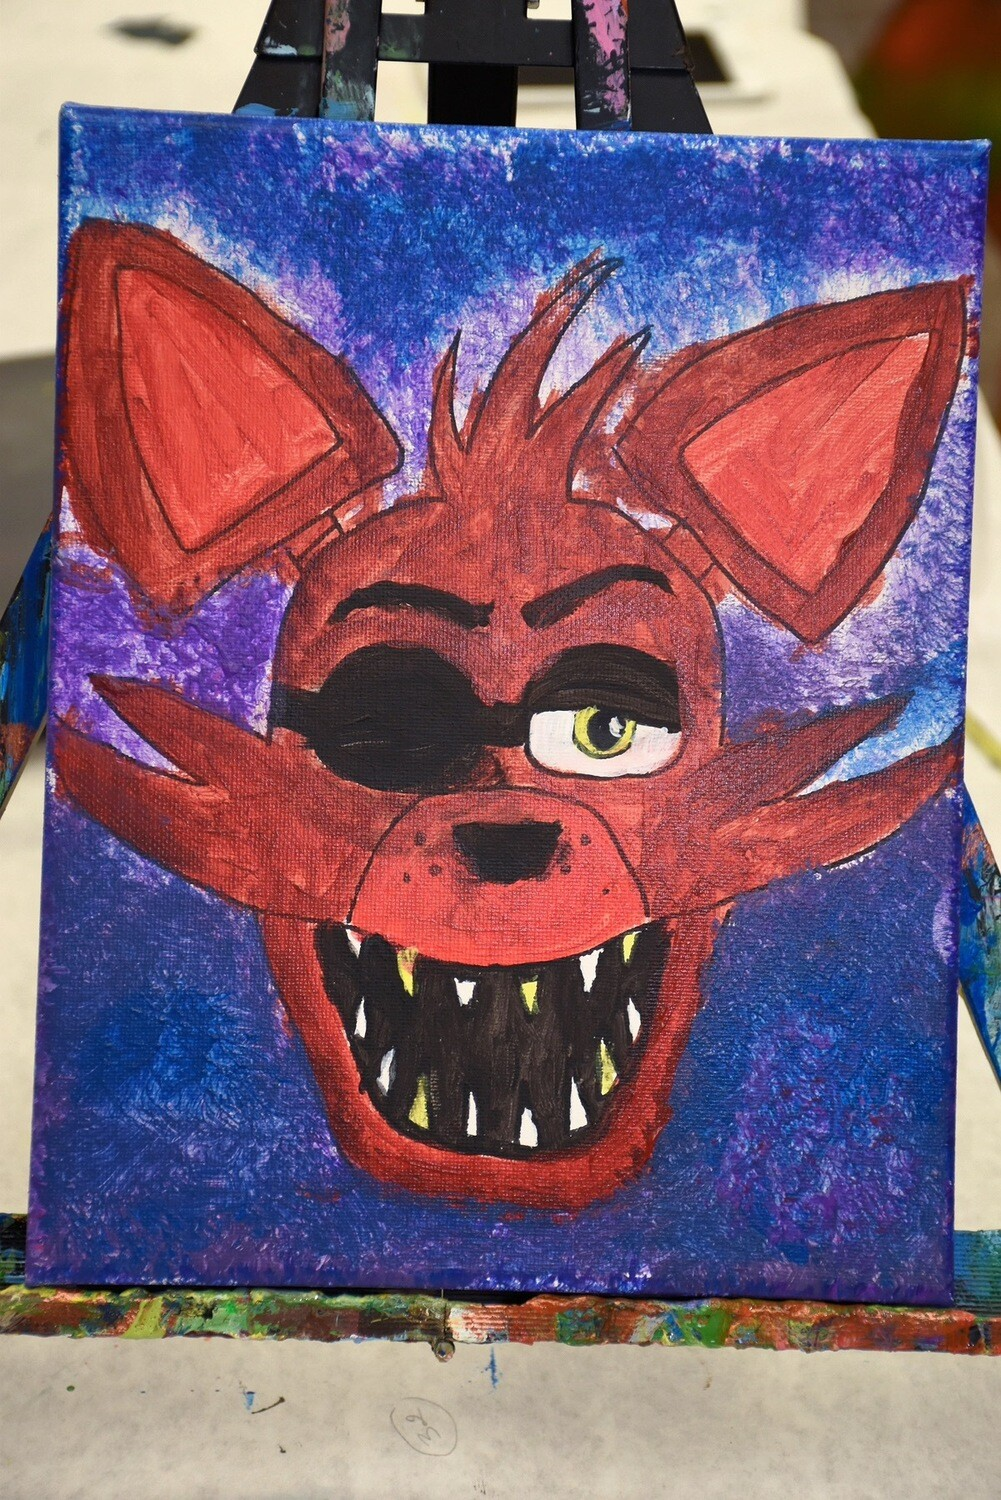 FOXY - Five Nights at Freddy's PAINT KIT